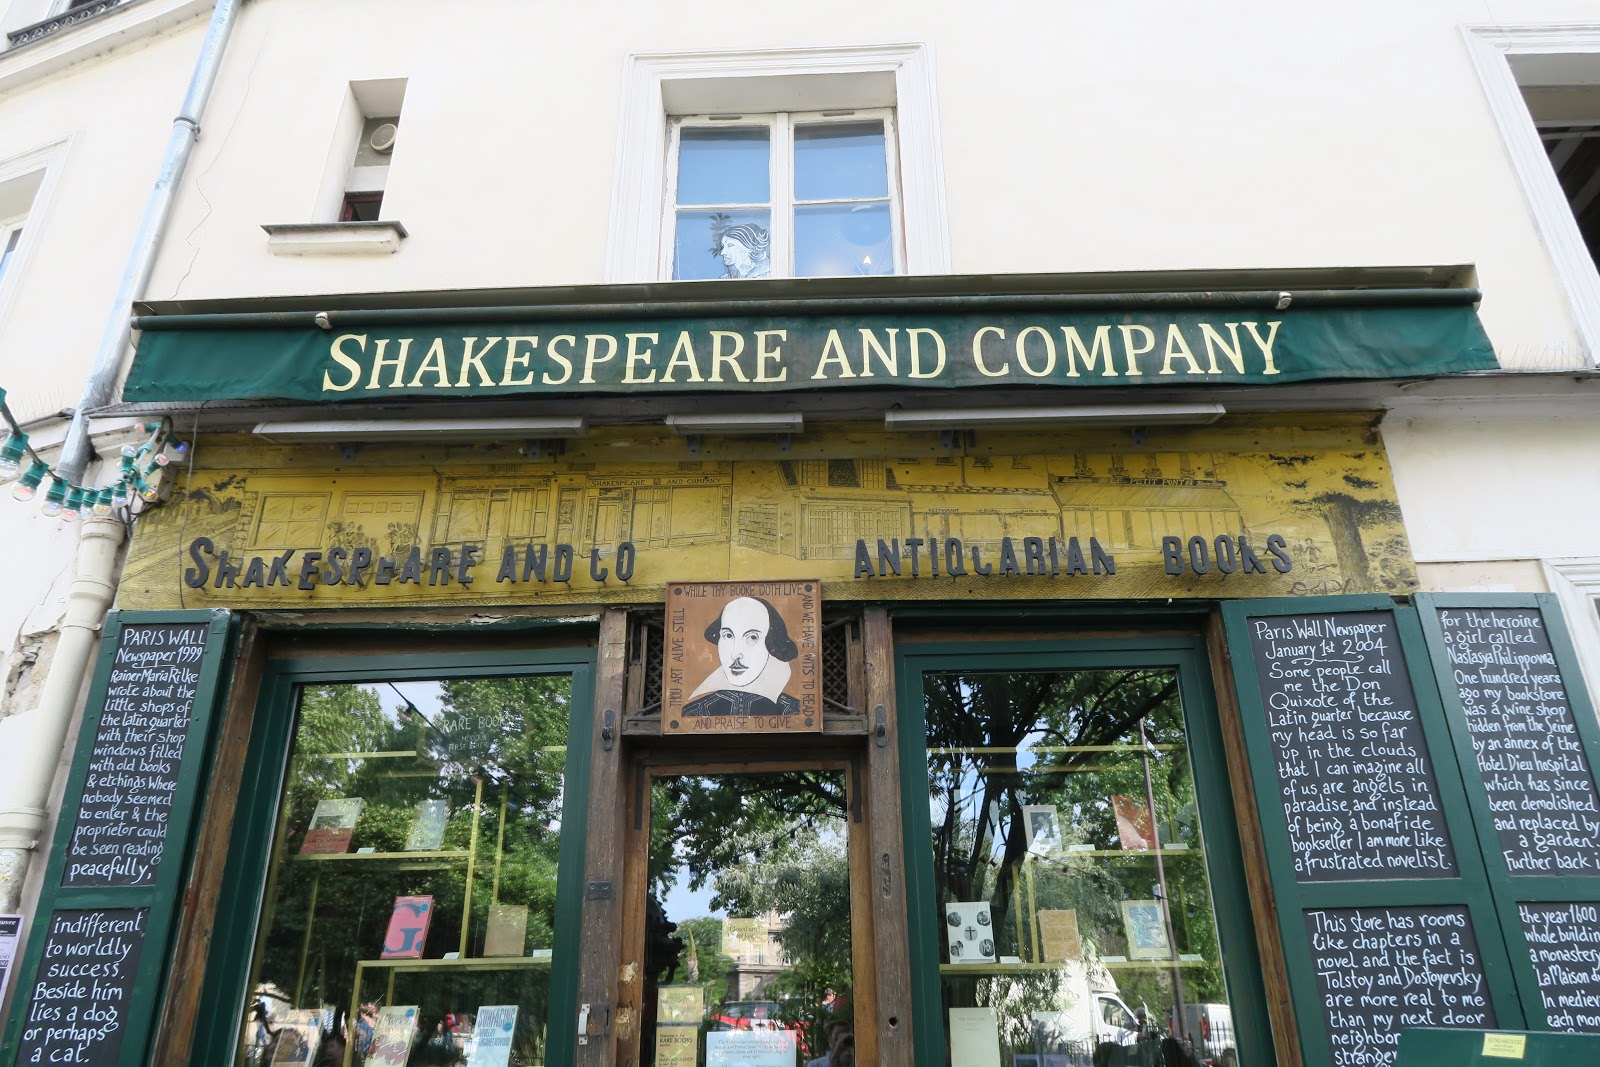 Exterior shot of the Shakespeare and Company book shop from our trip to Paris